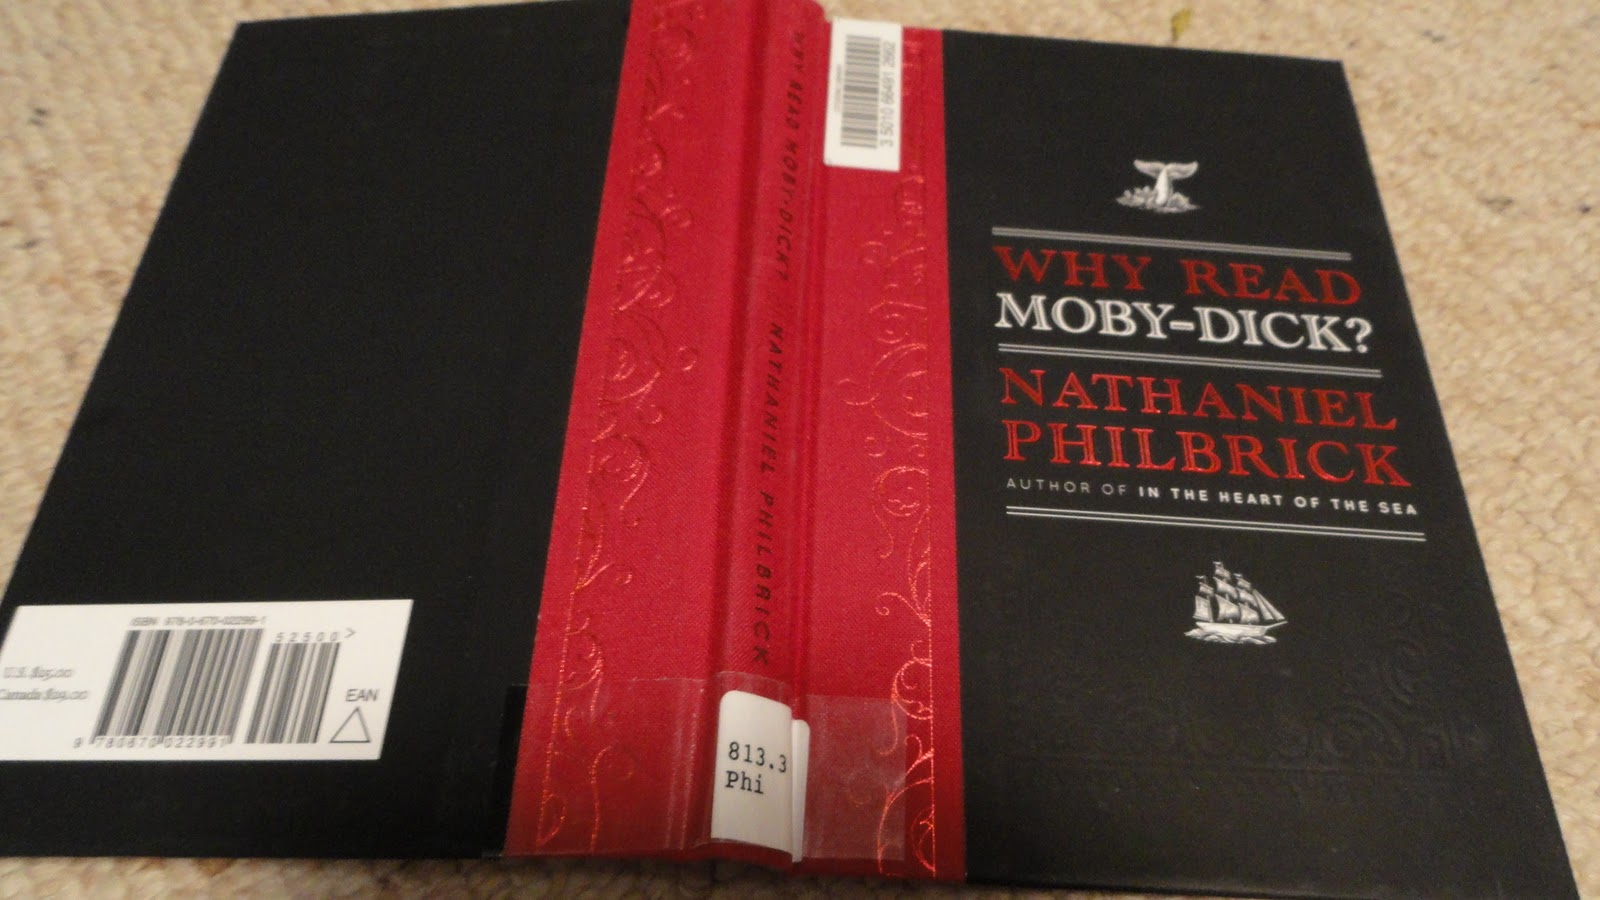 Dr tsais blog december 2011 this small booklet why read moby dick by nathaniel philbrick is a good example the cover see photo above is noble classy with dignity fandeluxe Images